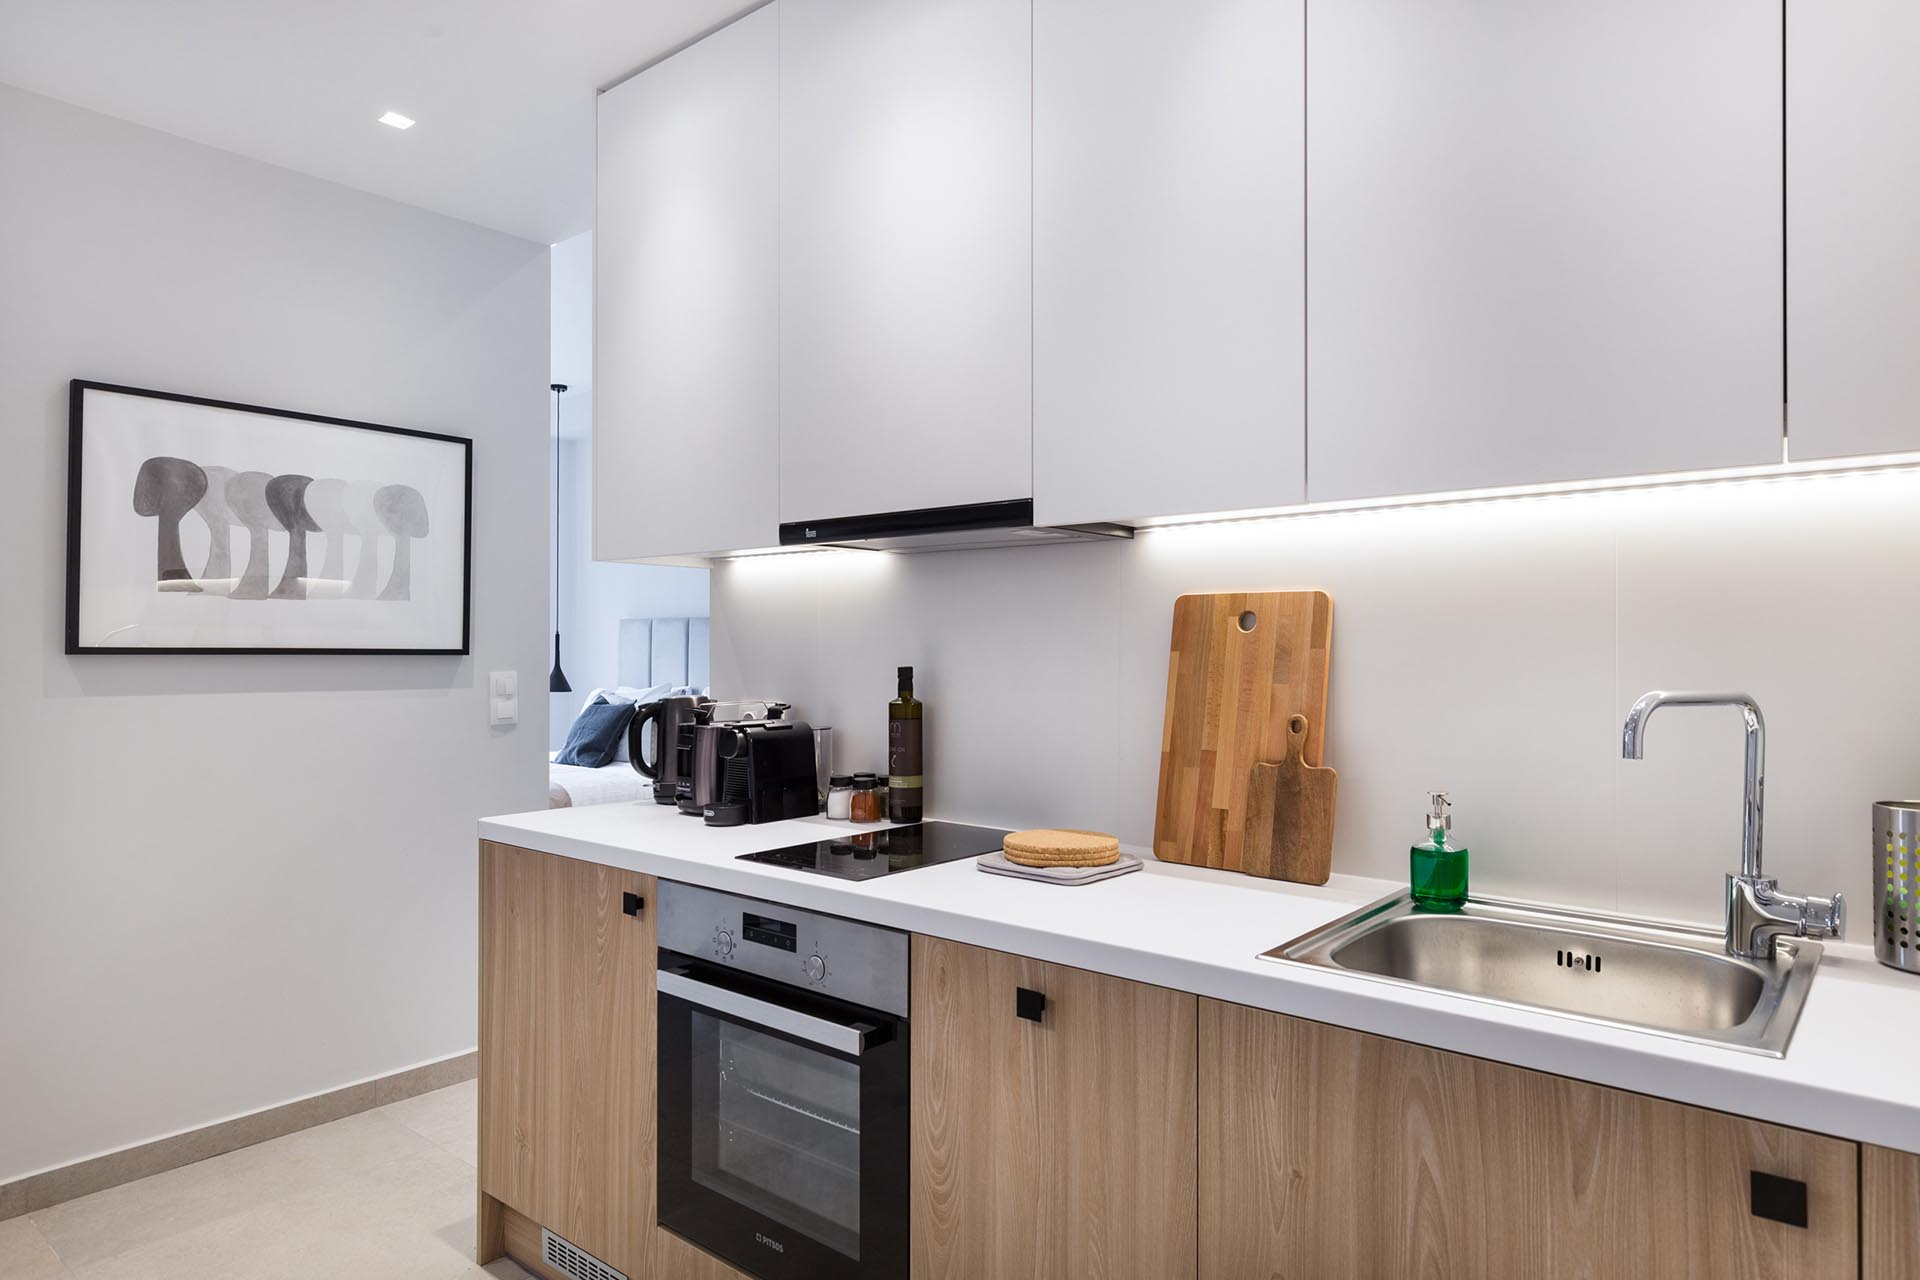 The modern kitchen of a small apartment includes undermount LED lighting.